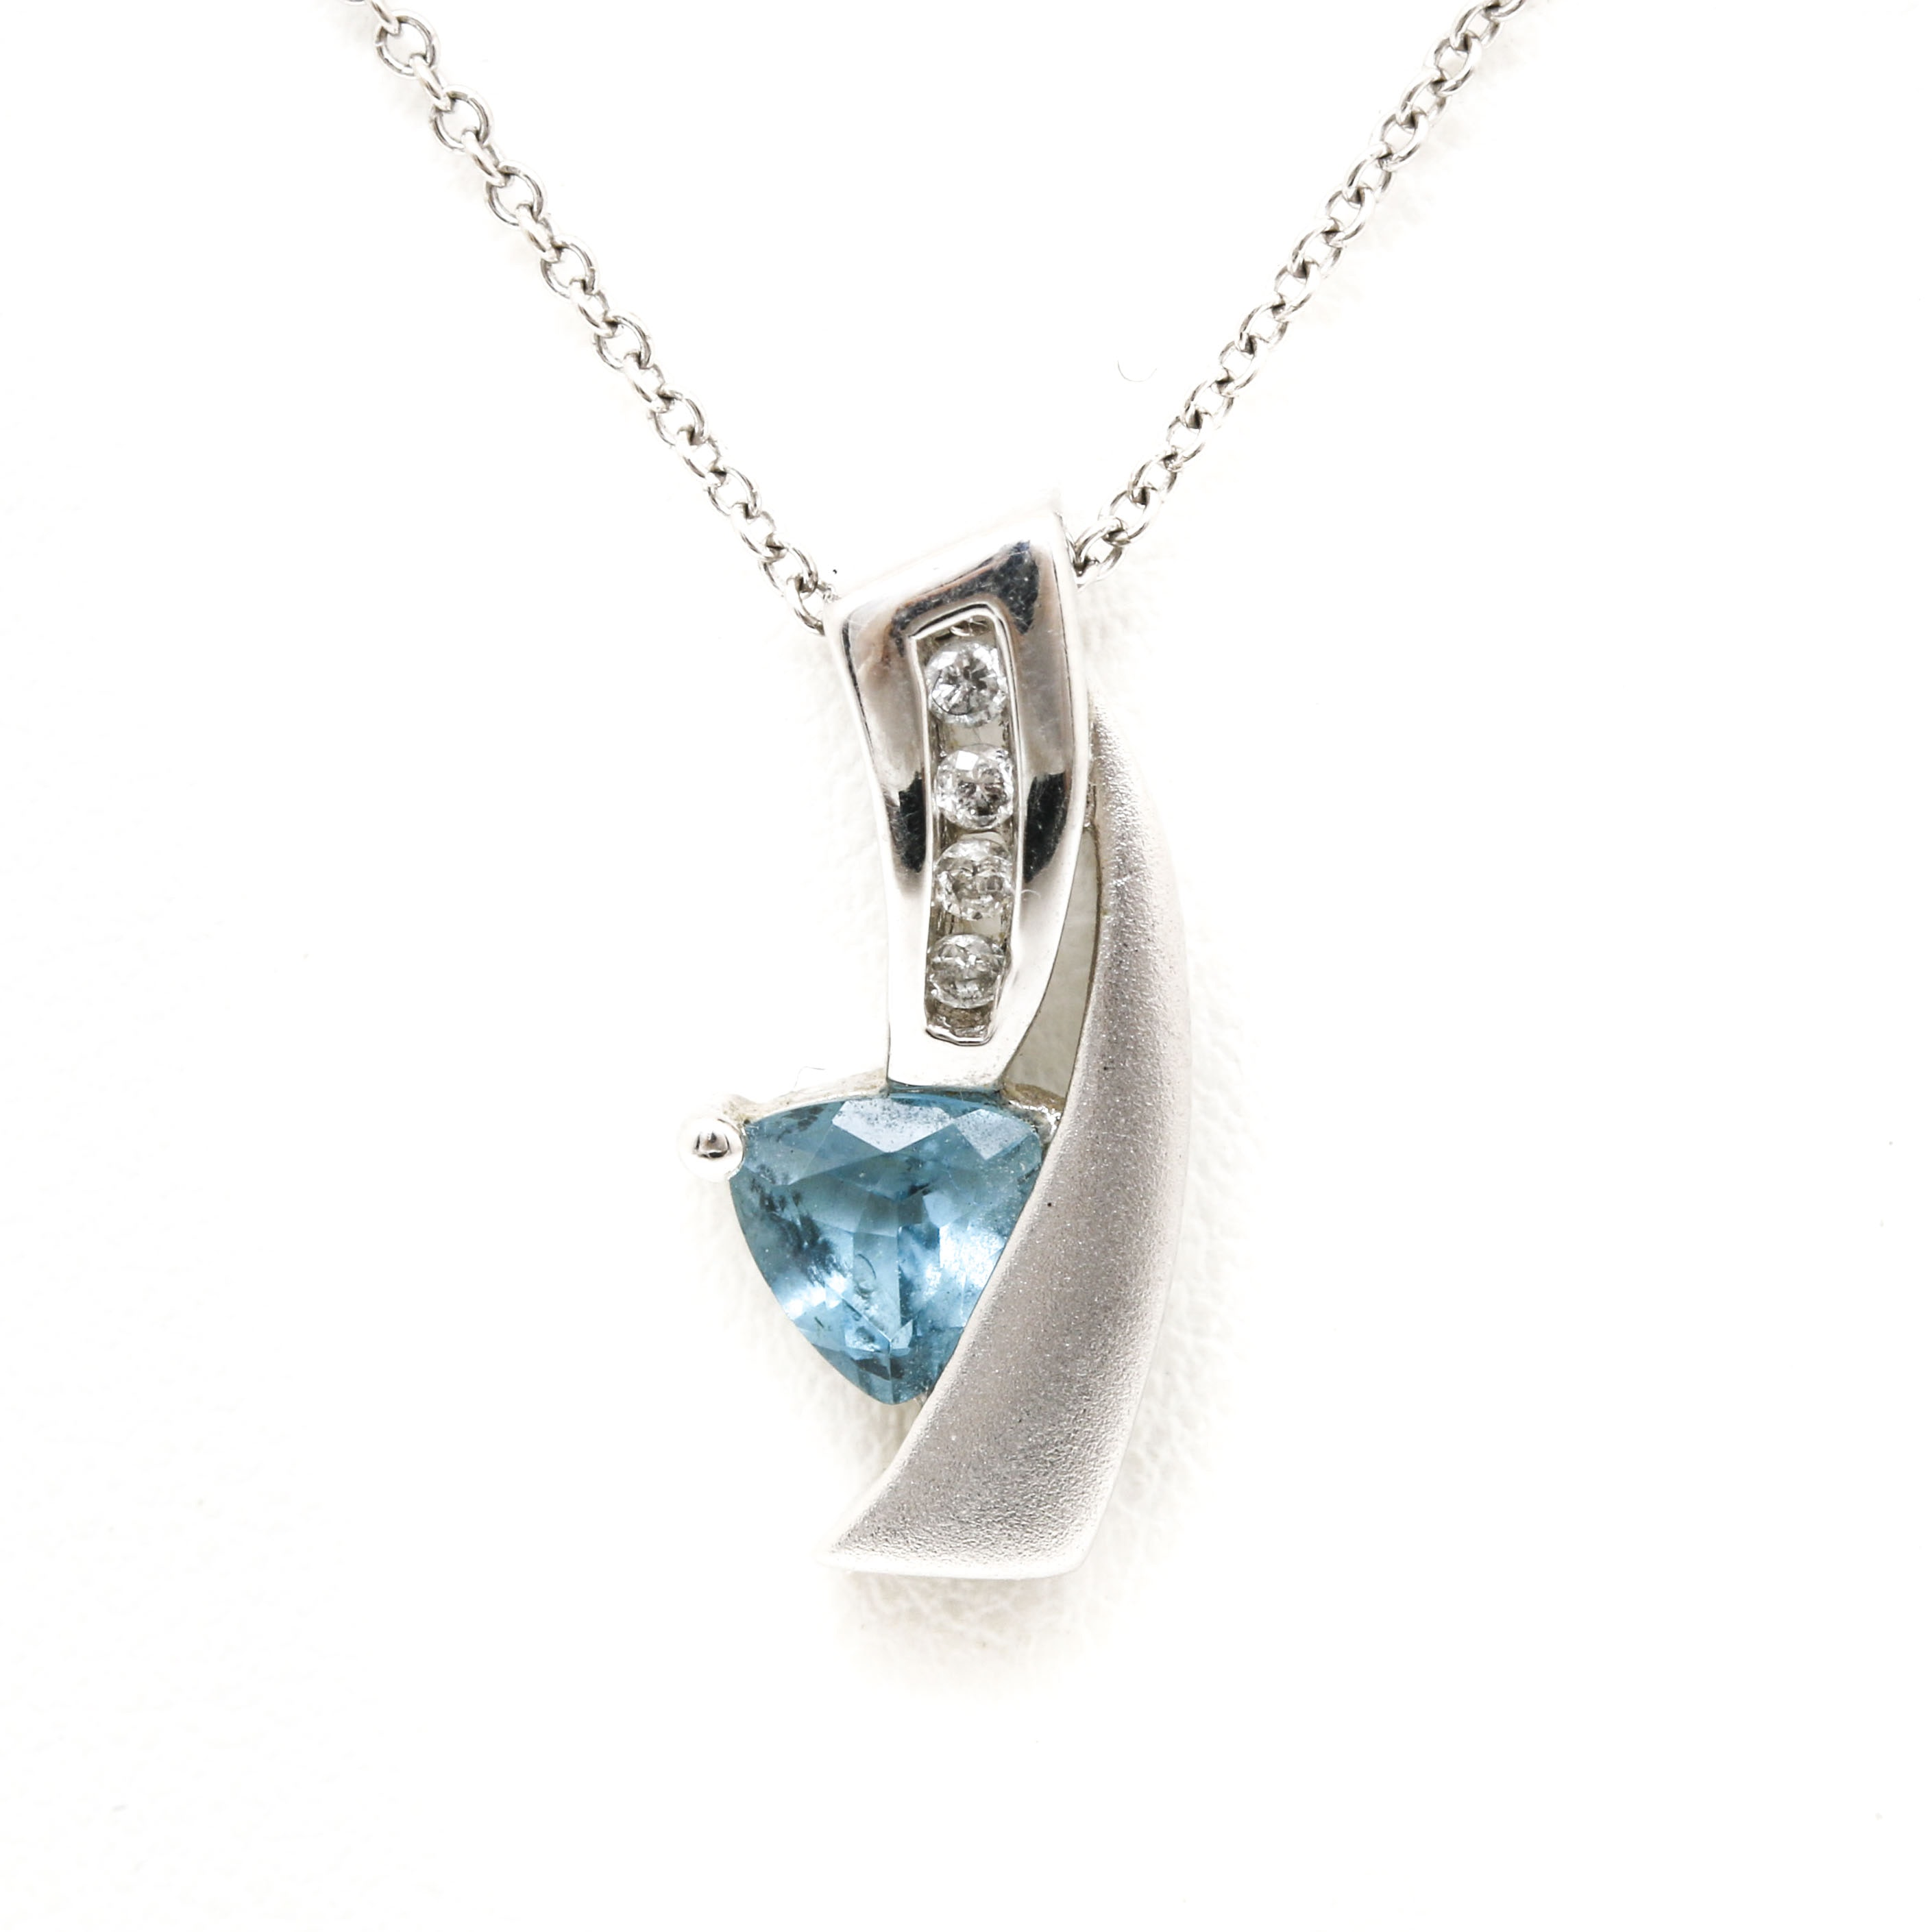 10K White Gold Topaz and Diamond Pendant on 14K Chain Necklace